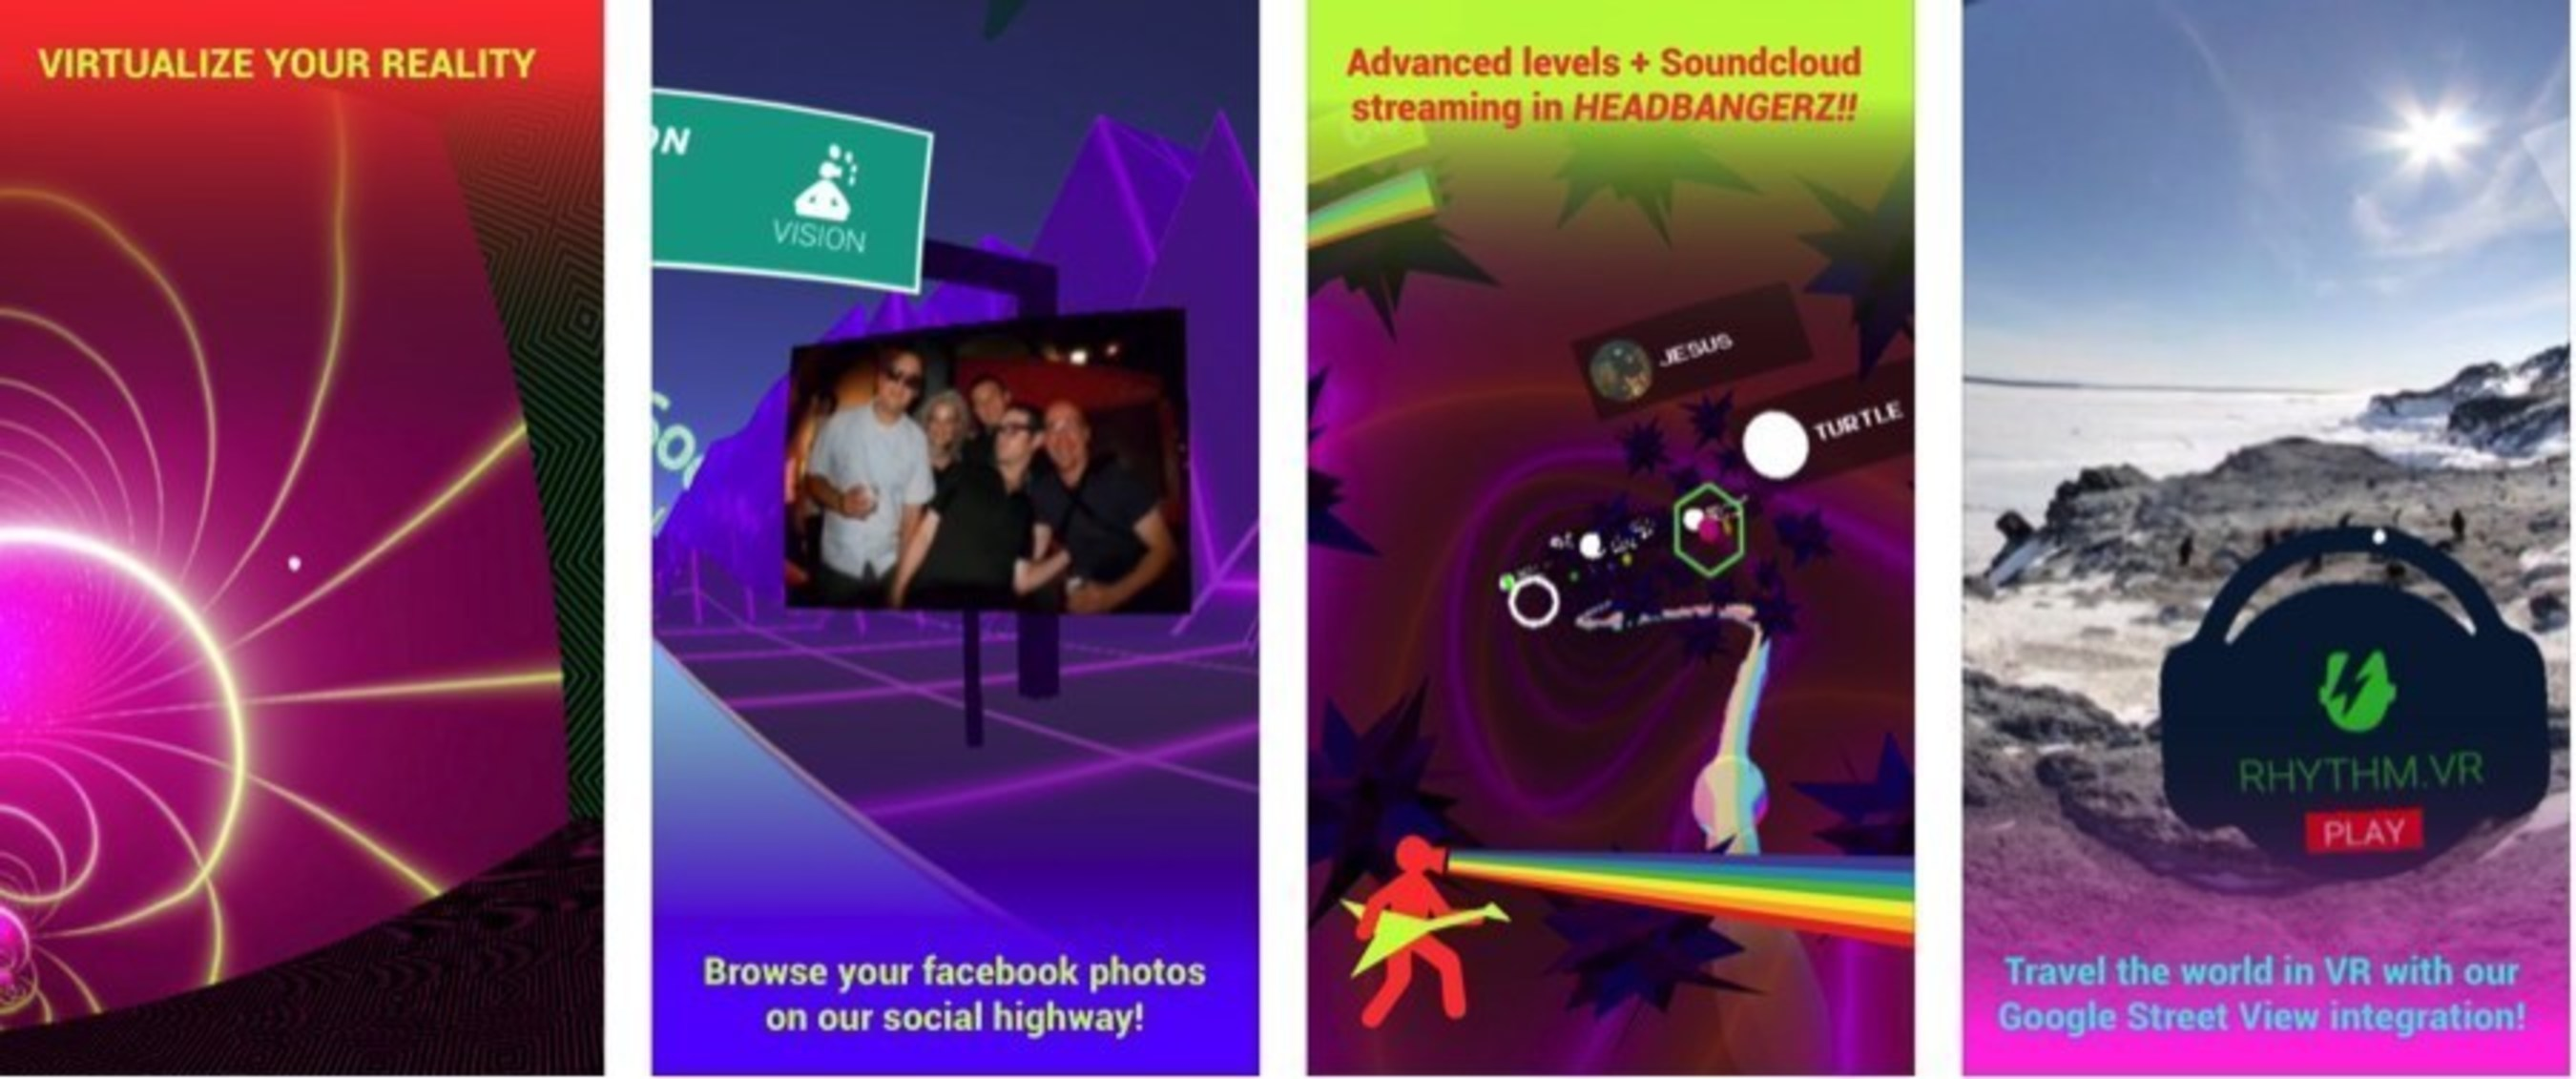 Mobile Virtual Reality App Spaceout.VR gets a radical update